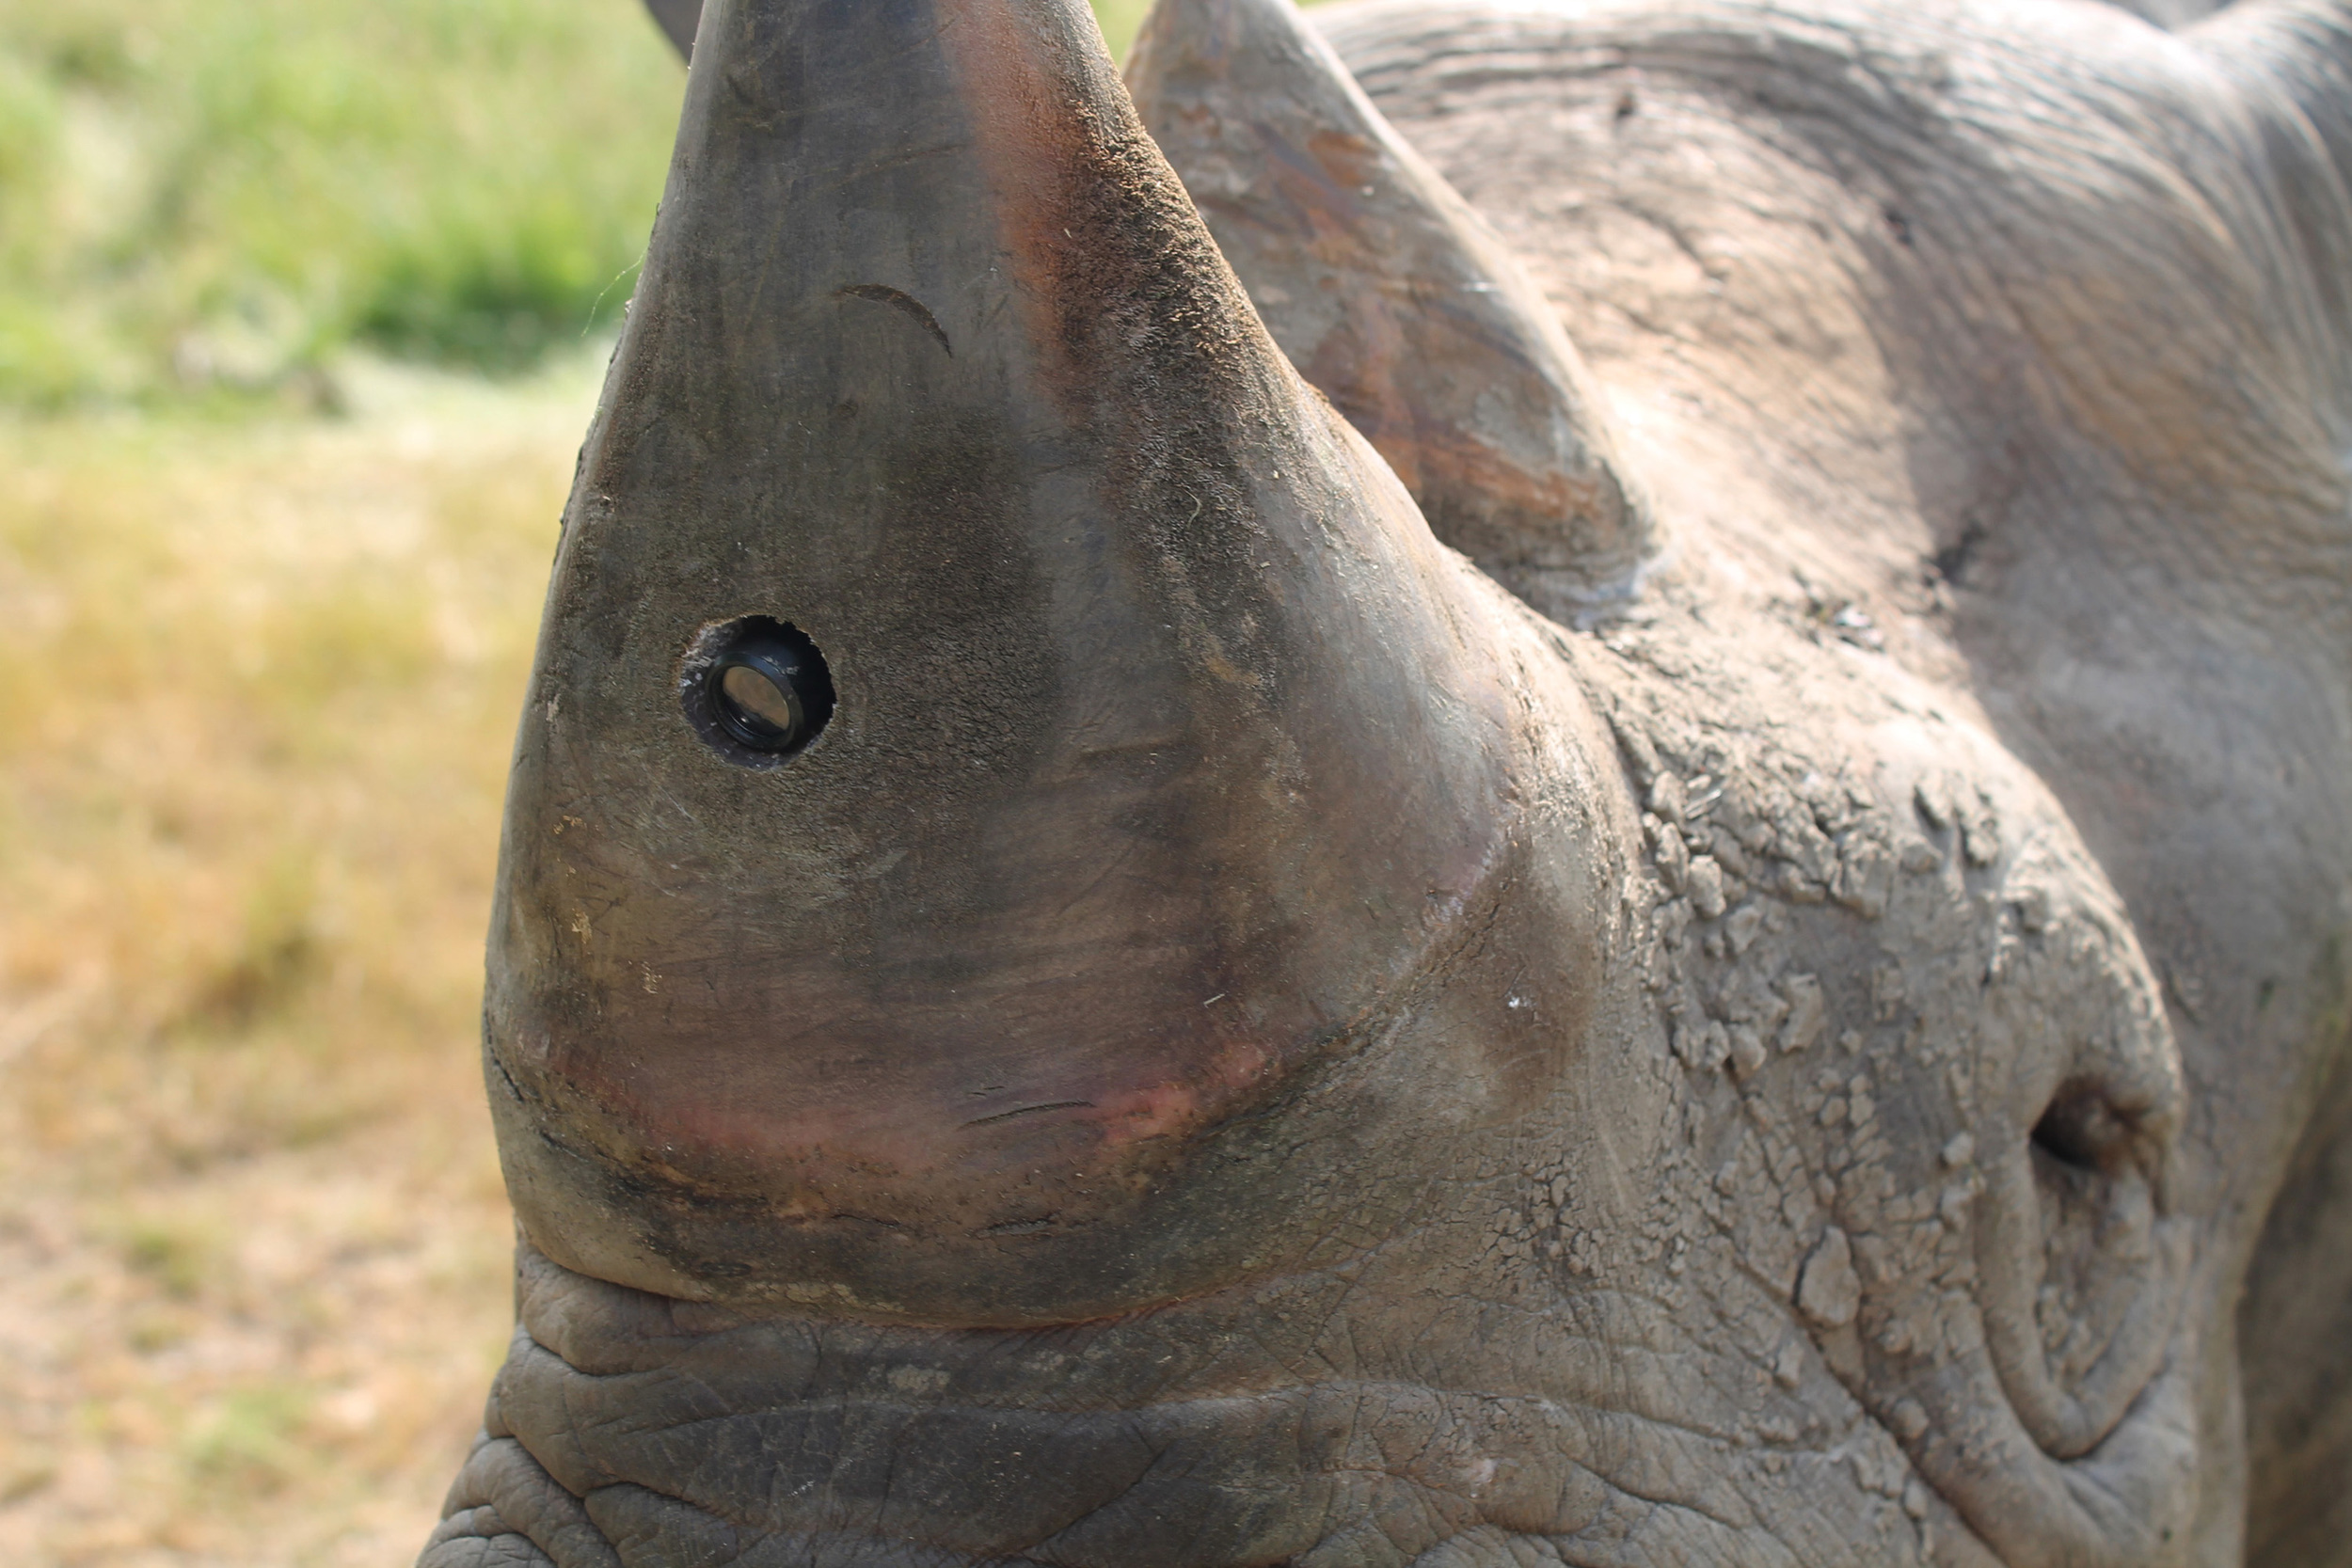 A black rhino with a tiny camera embedded in its horn. PROTECT